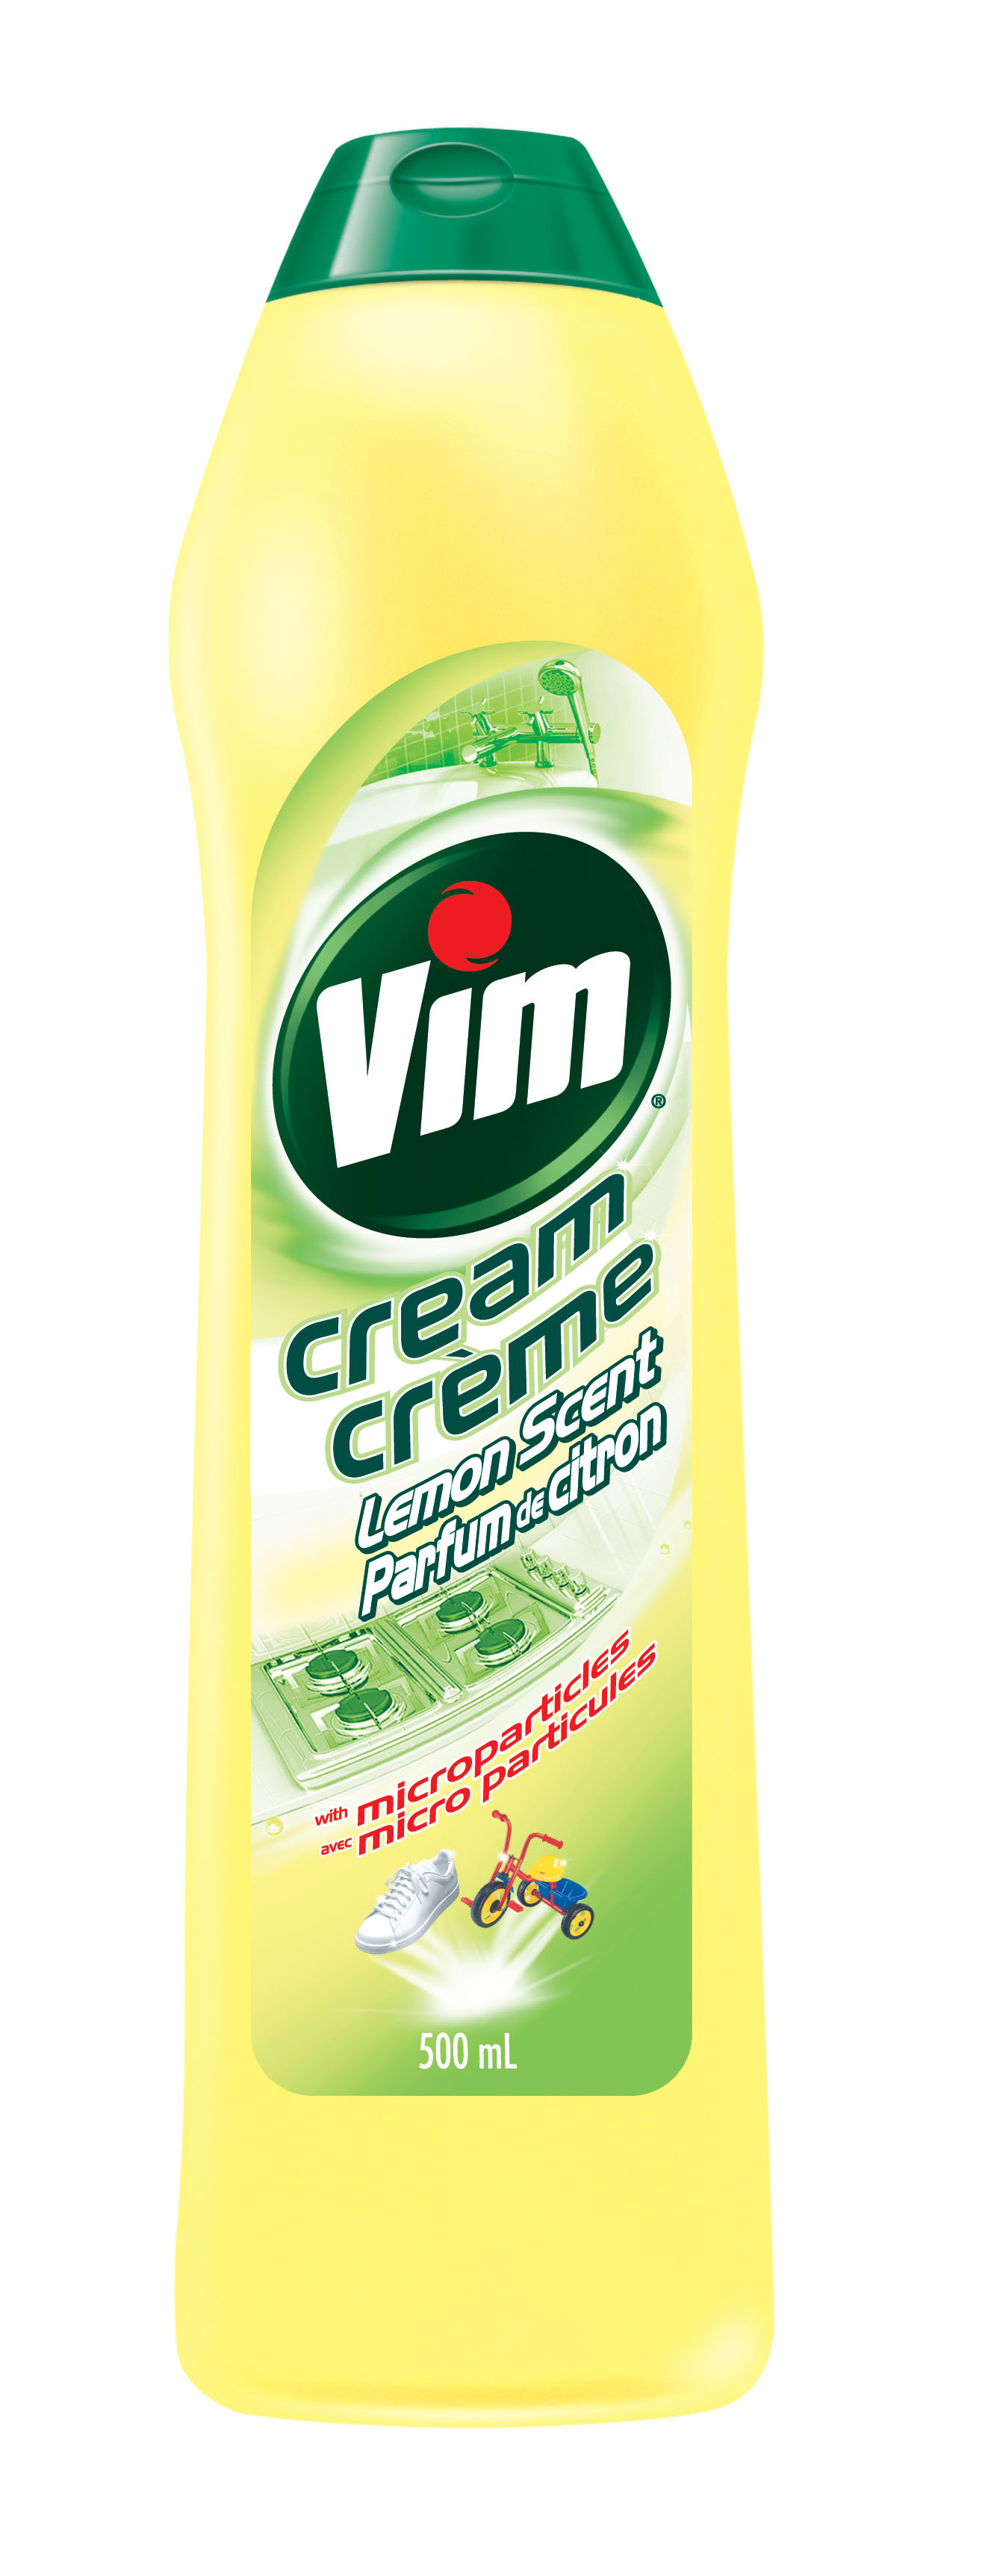 Vim Cream Cleaner In Lemon Scent Reviews In Household Cleaning - Cleaning stuff for bathroom